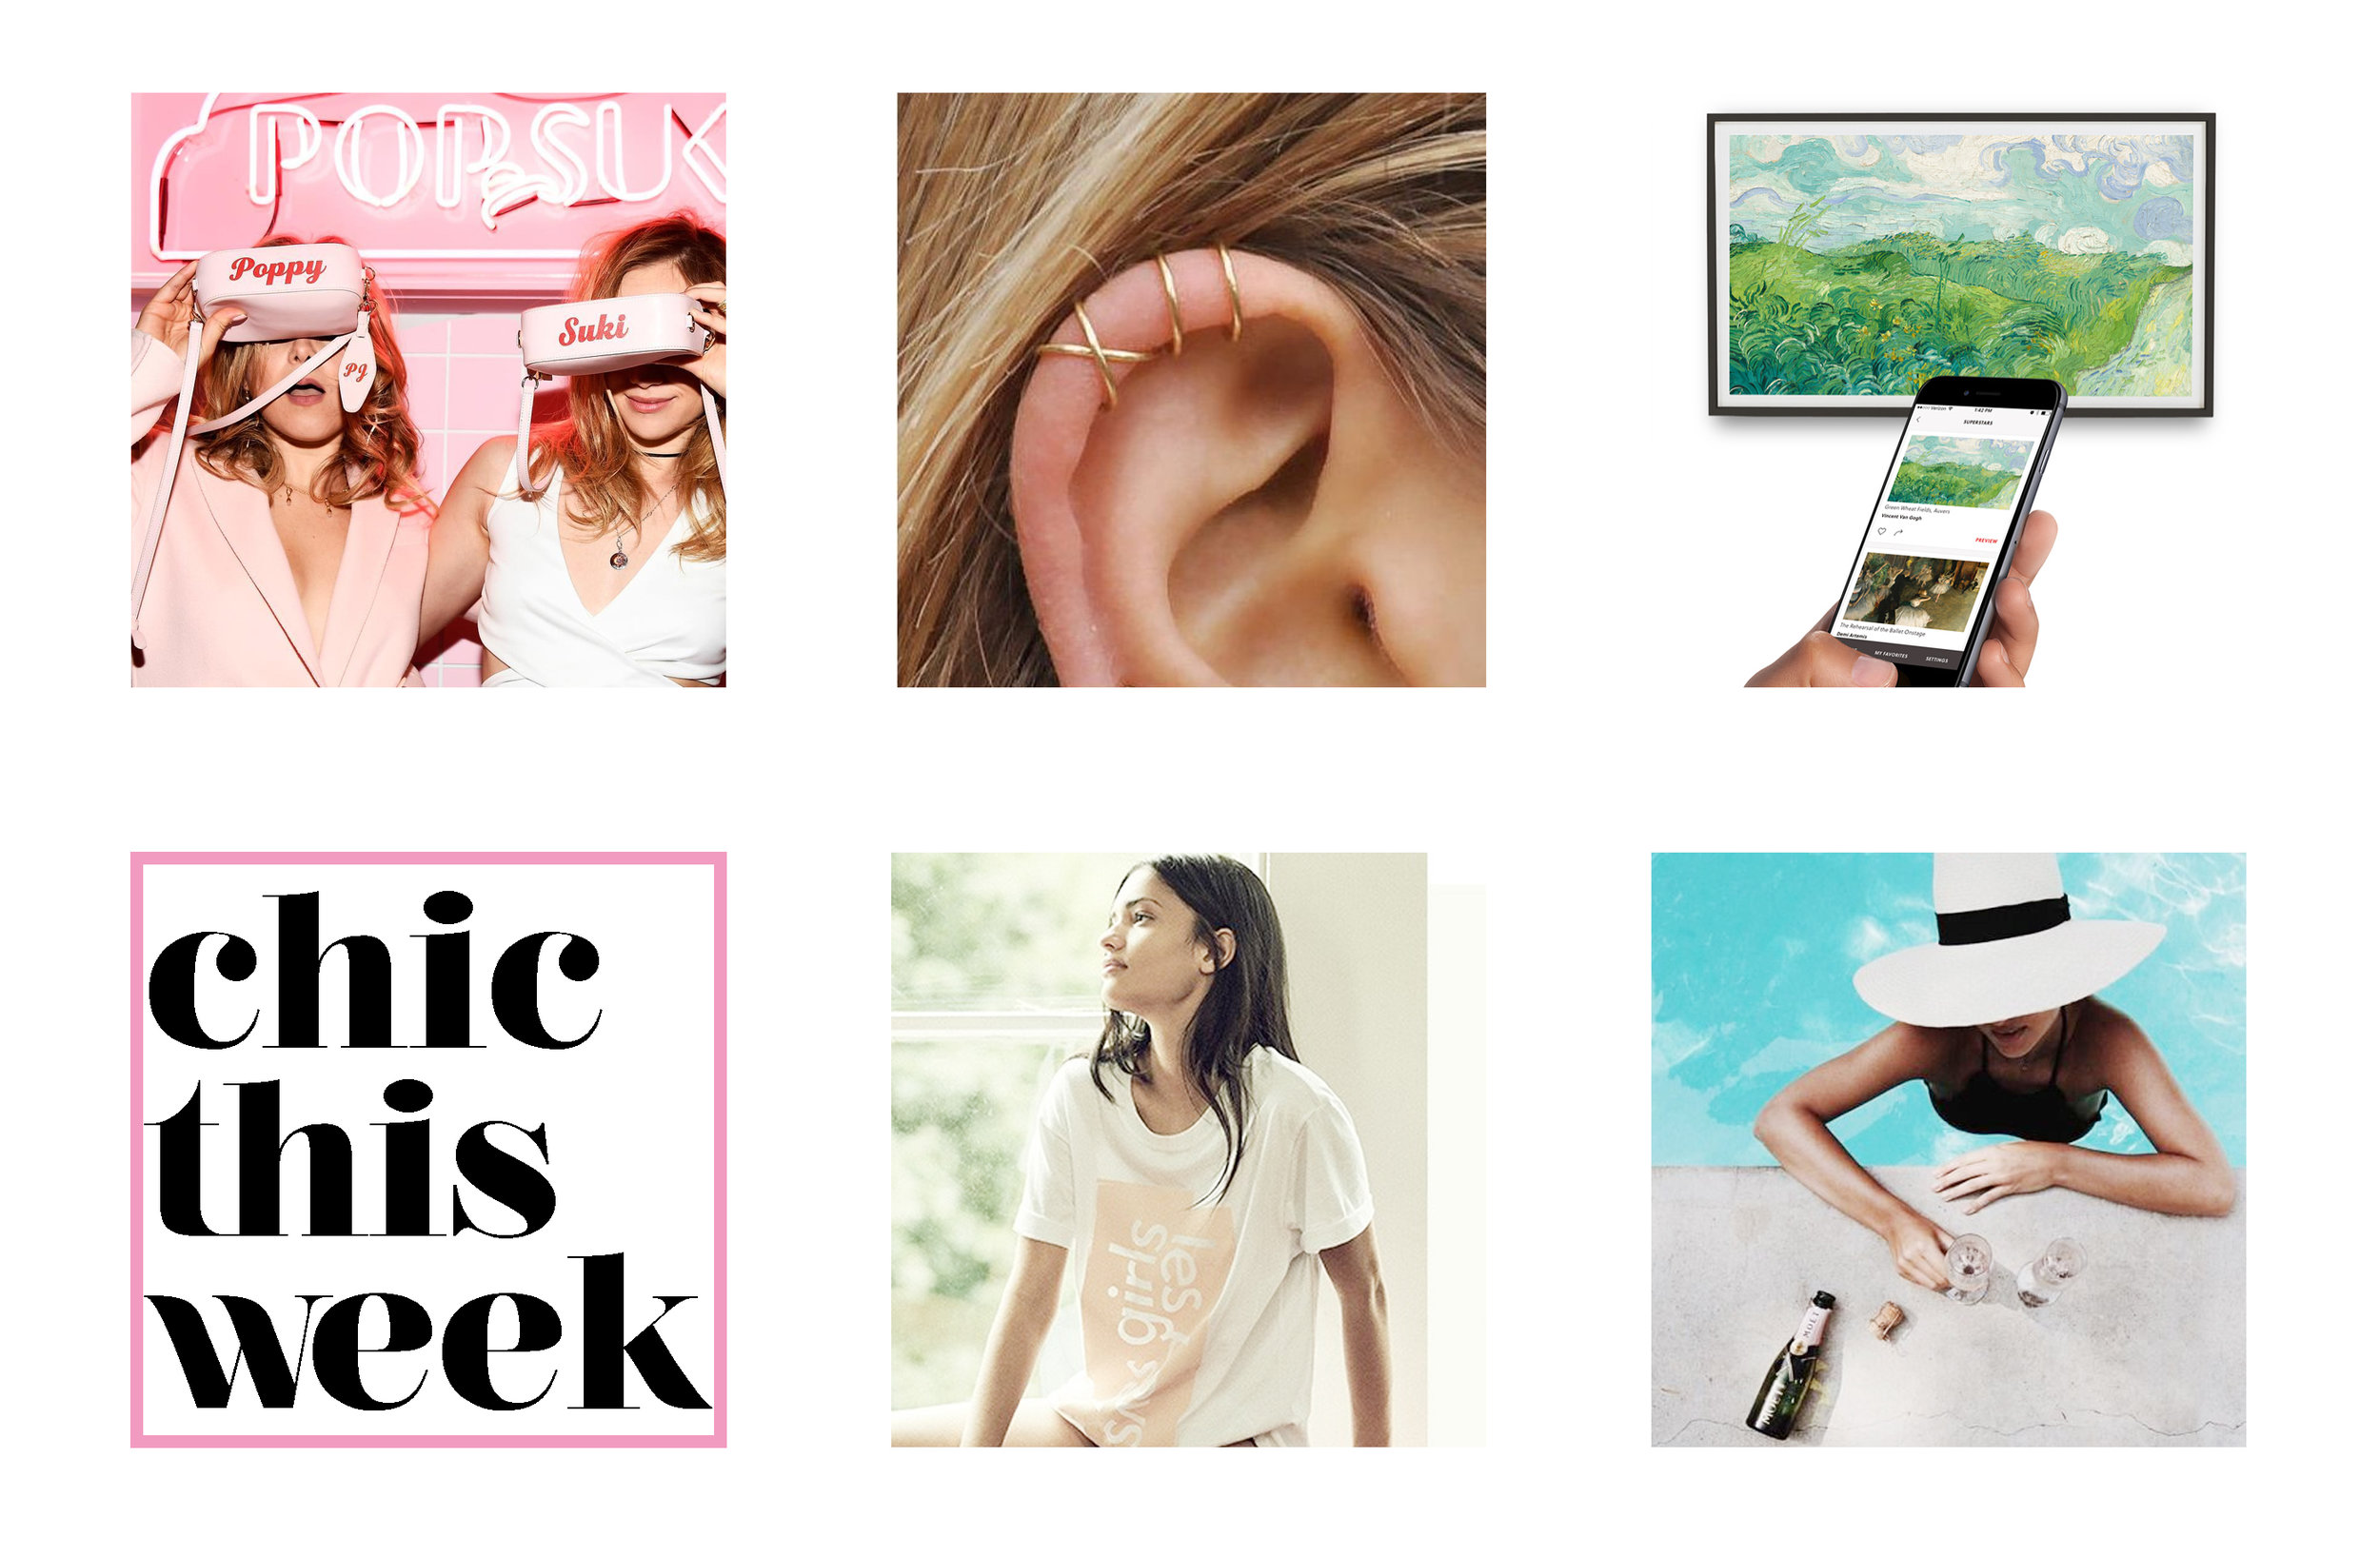 What's CHIC this week